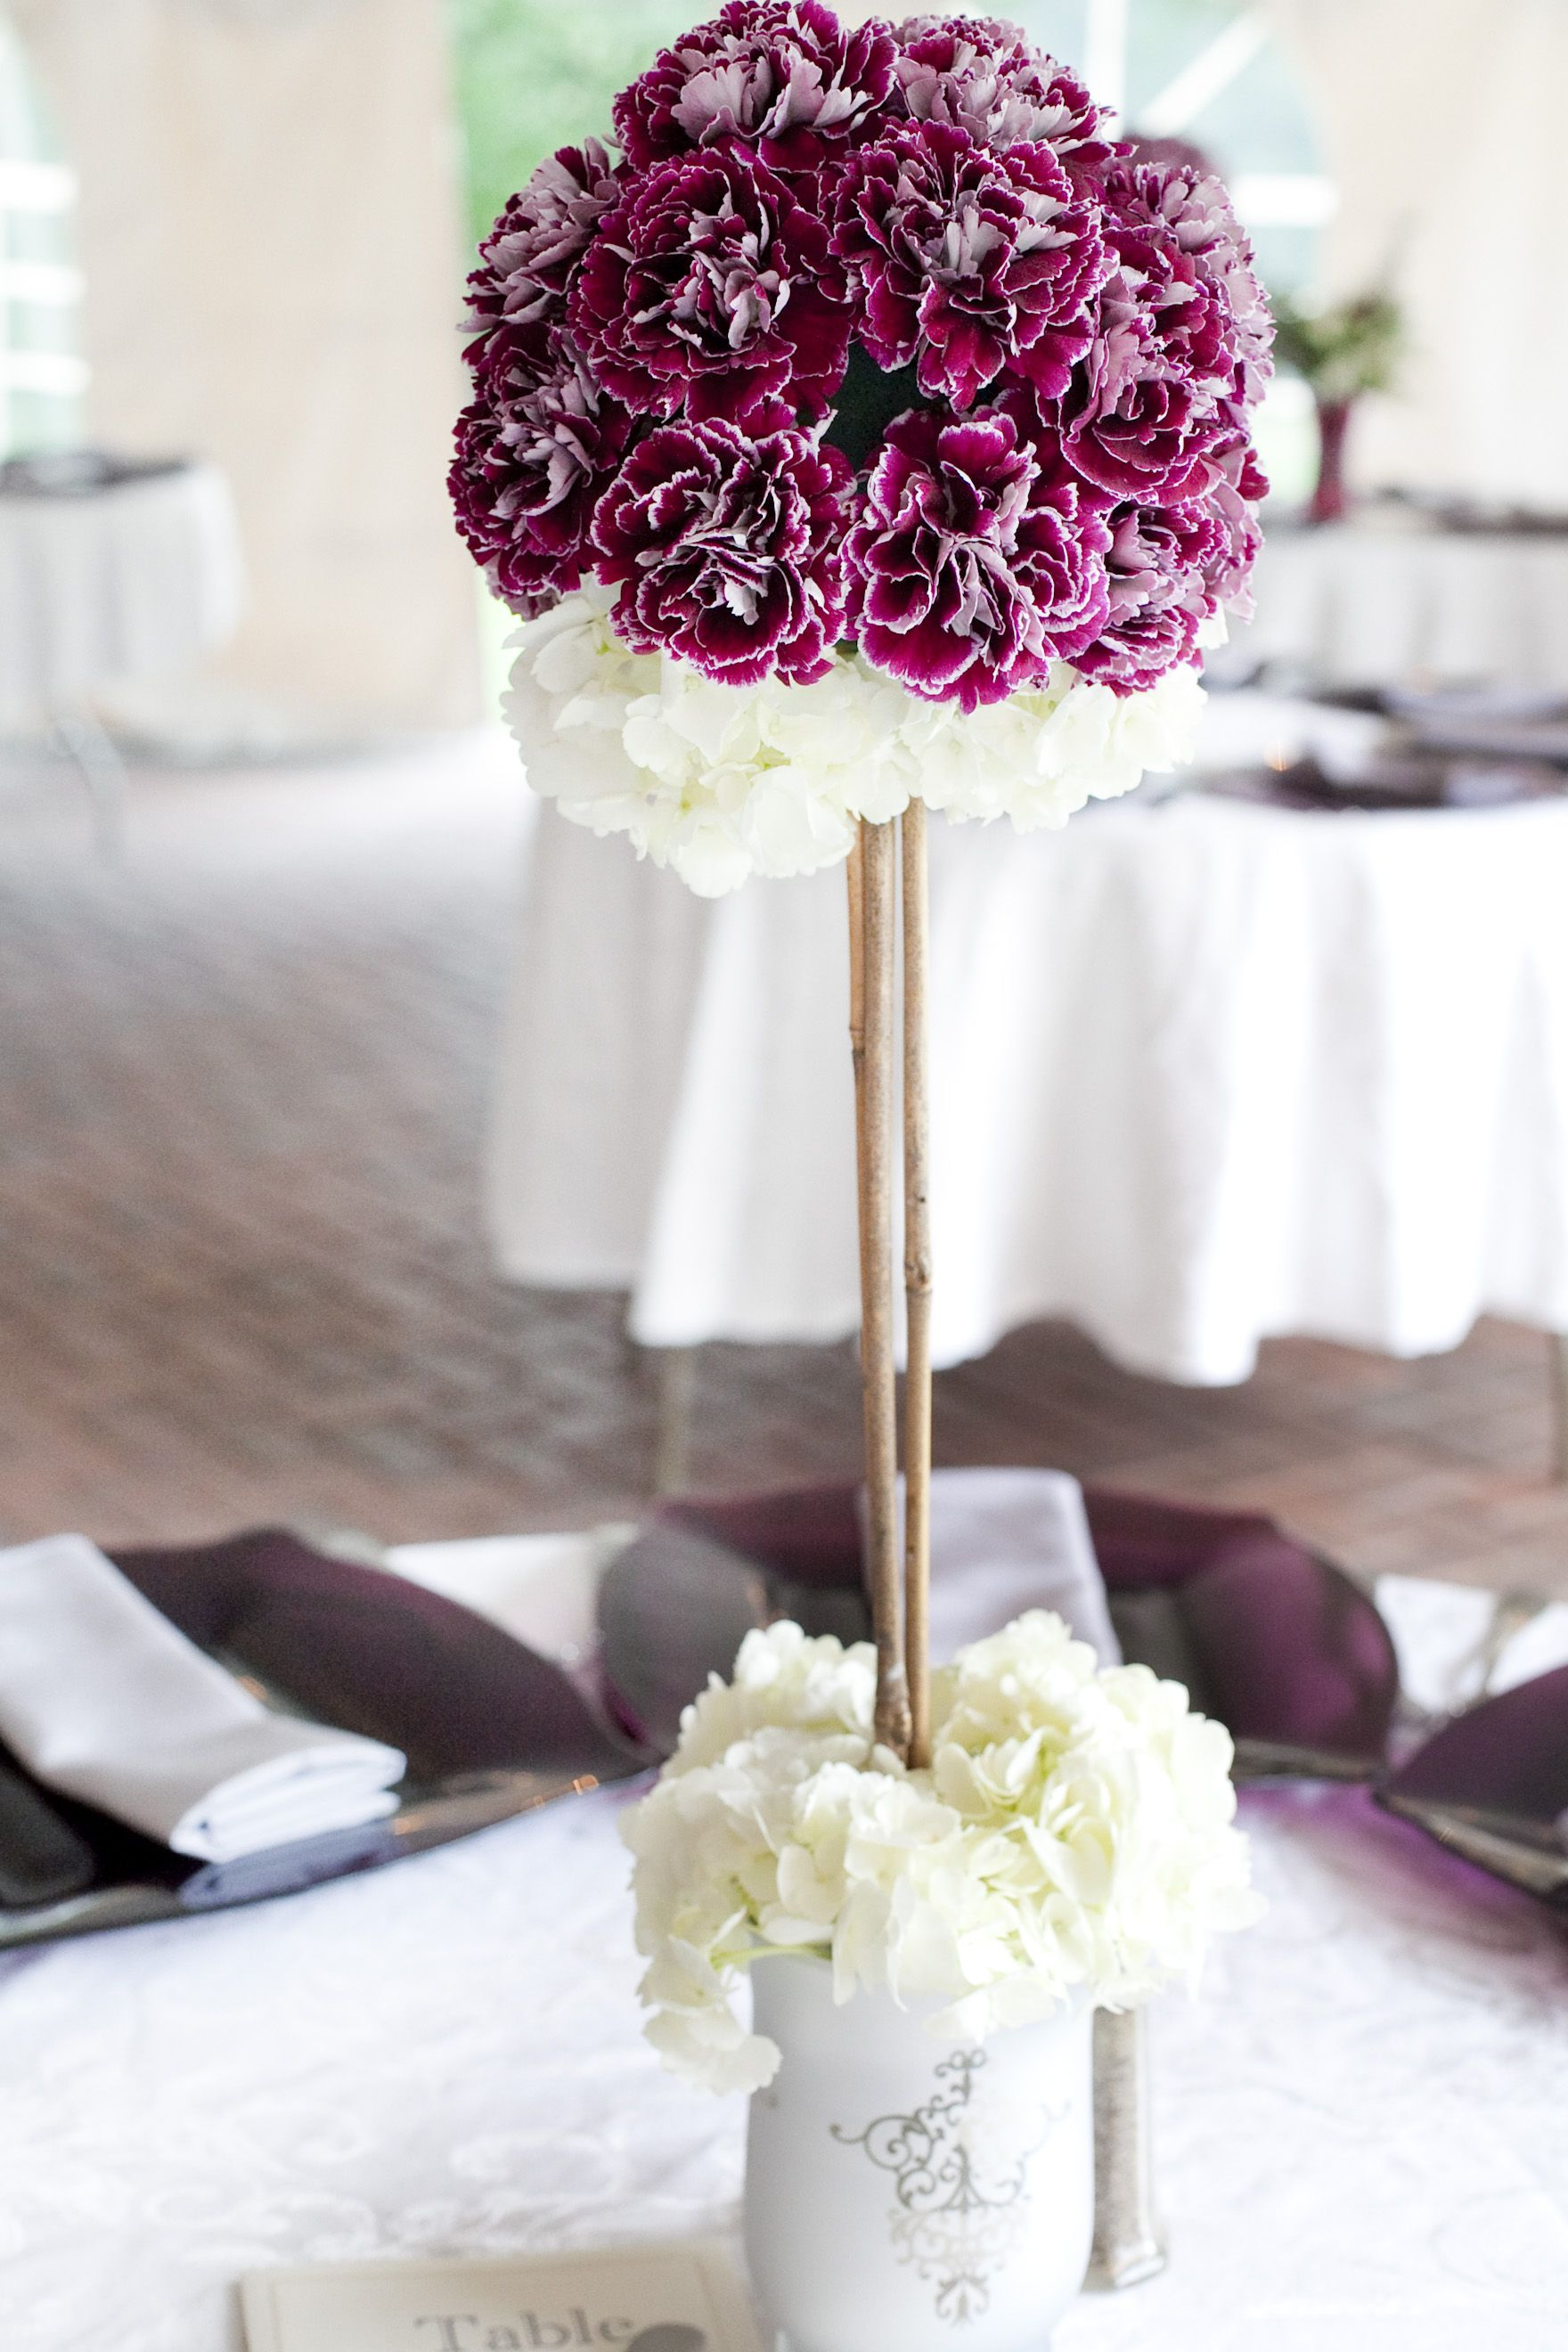 Lilac wedding decoration ideas  Wedding Idea DIY Topiary Centerpieces could do these with tissue